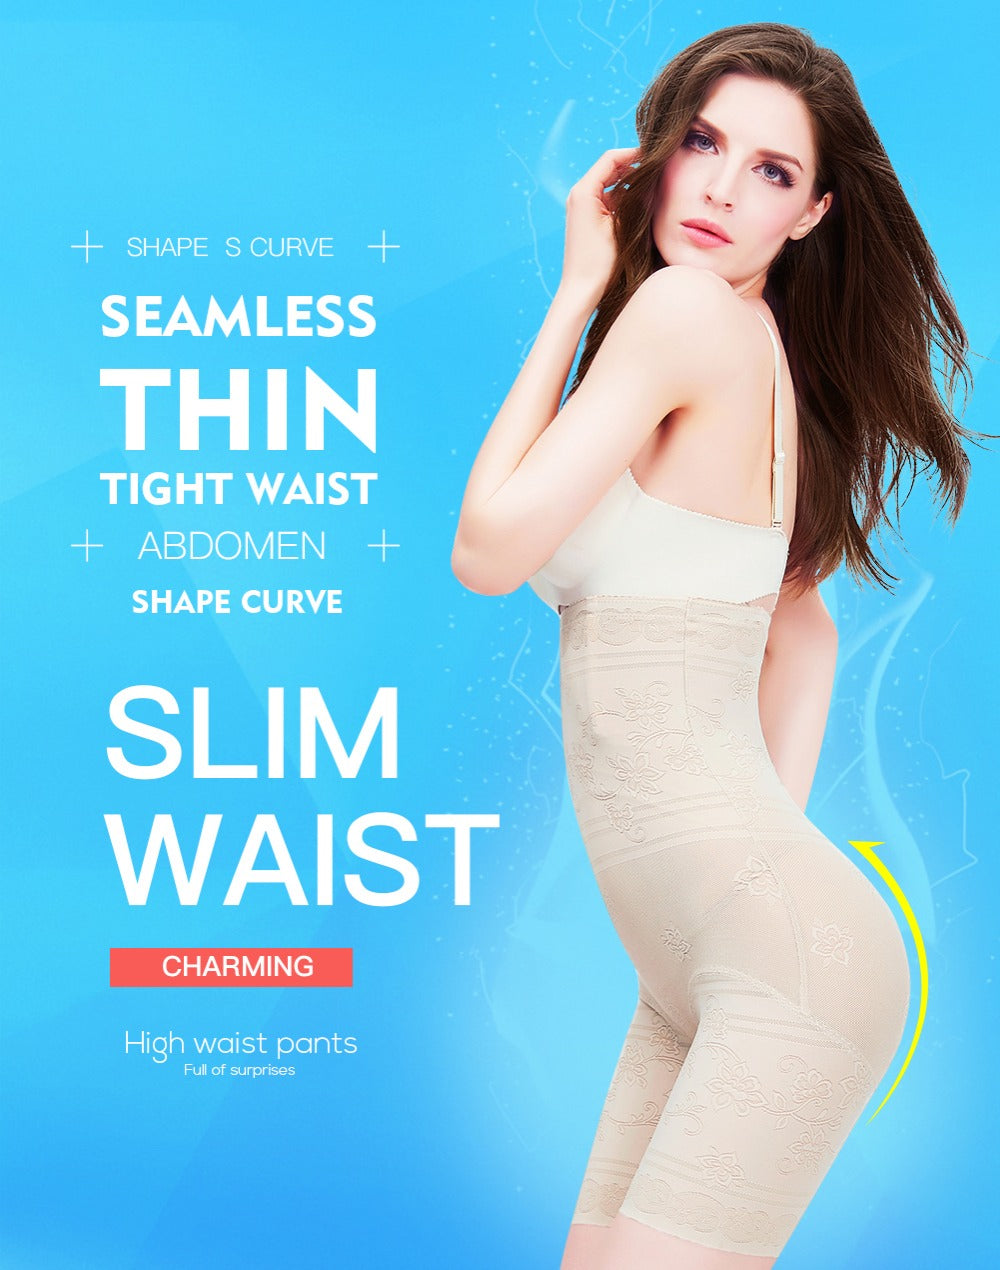 Body Shaper Shapewear Waist Trainer Slimming Briefs Shapewear Bodysuit Butt Lifter Bellly Slimming Control Pants For Women